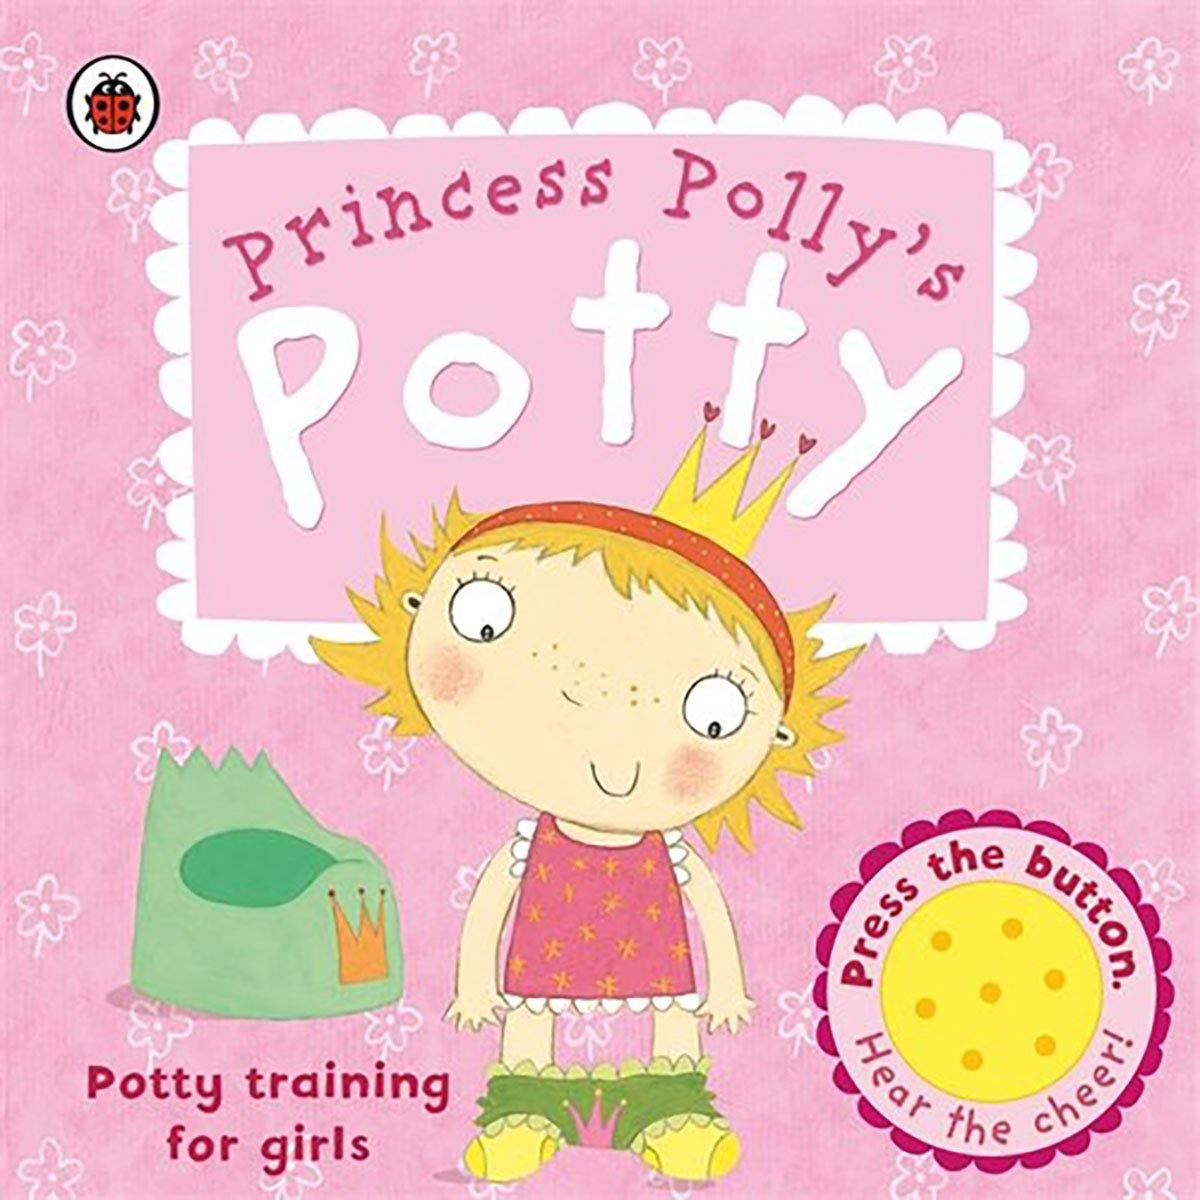 Bookspeed Princess Pollys Potty Training Book - huggle